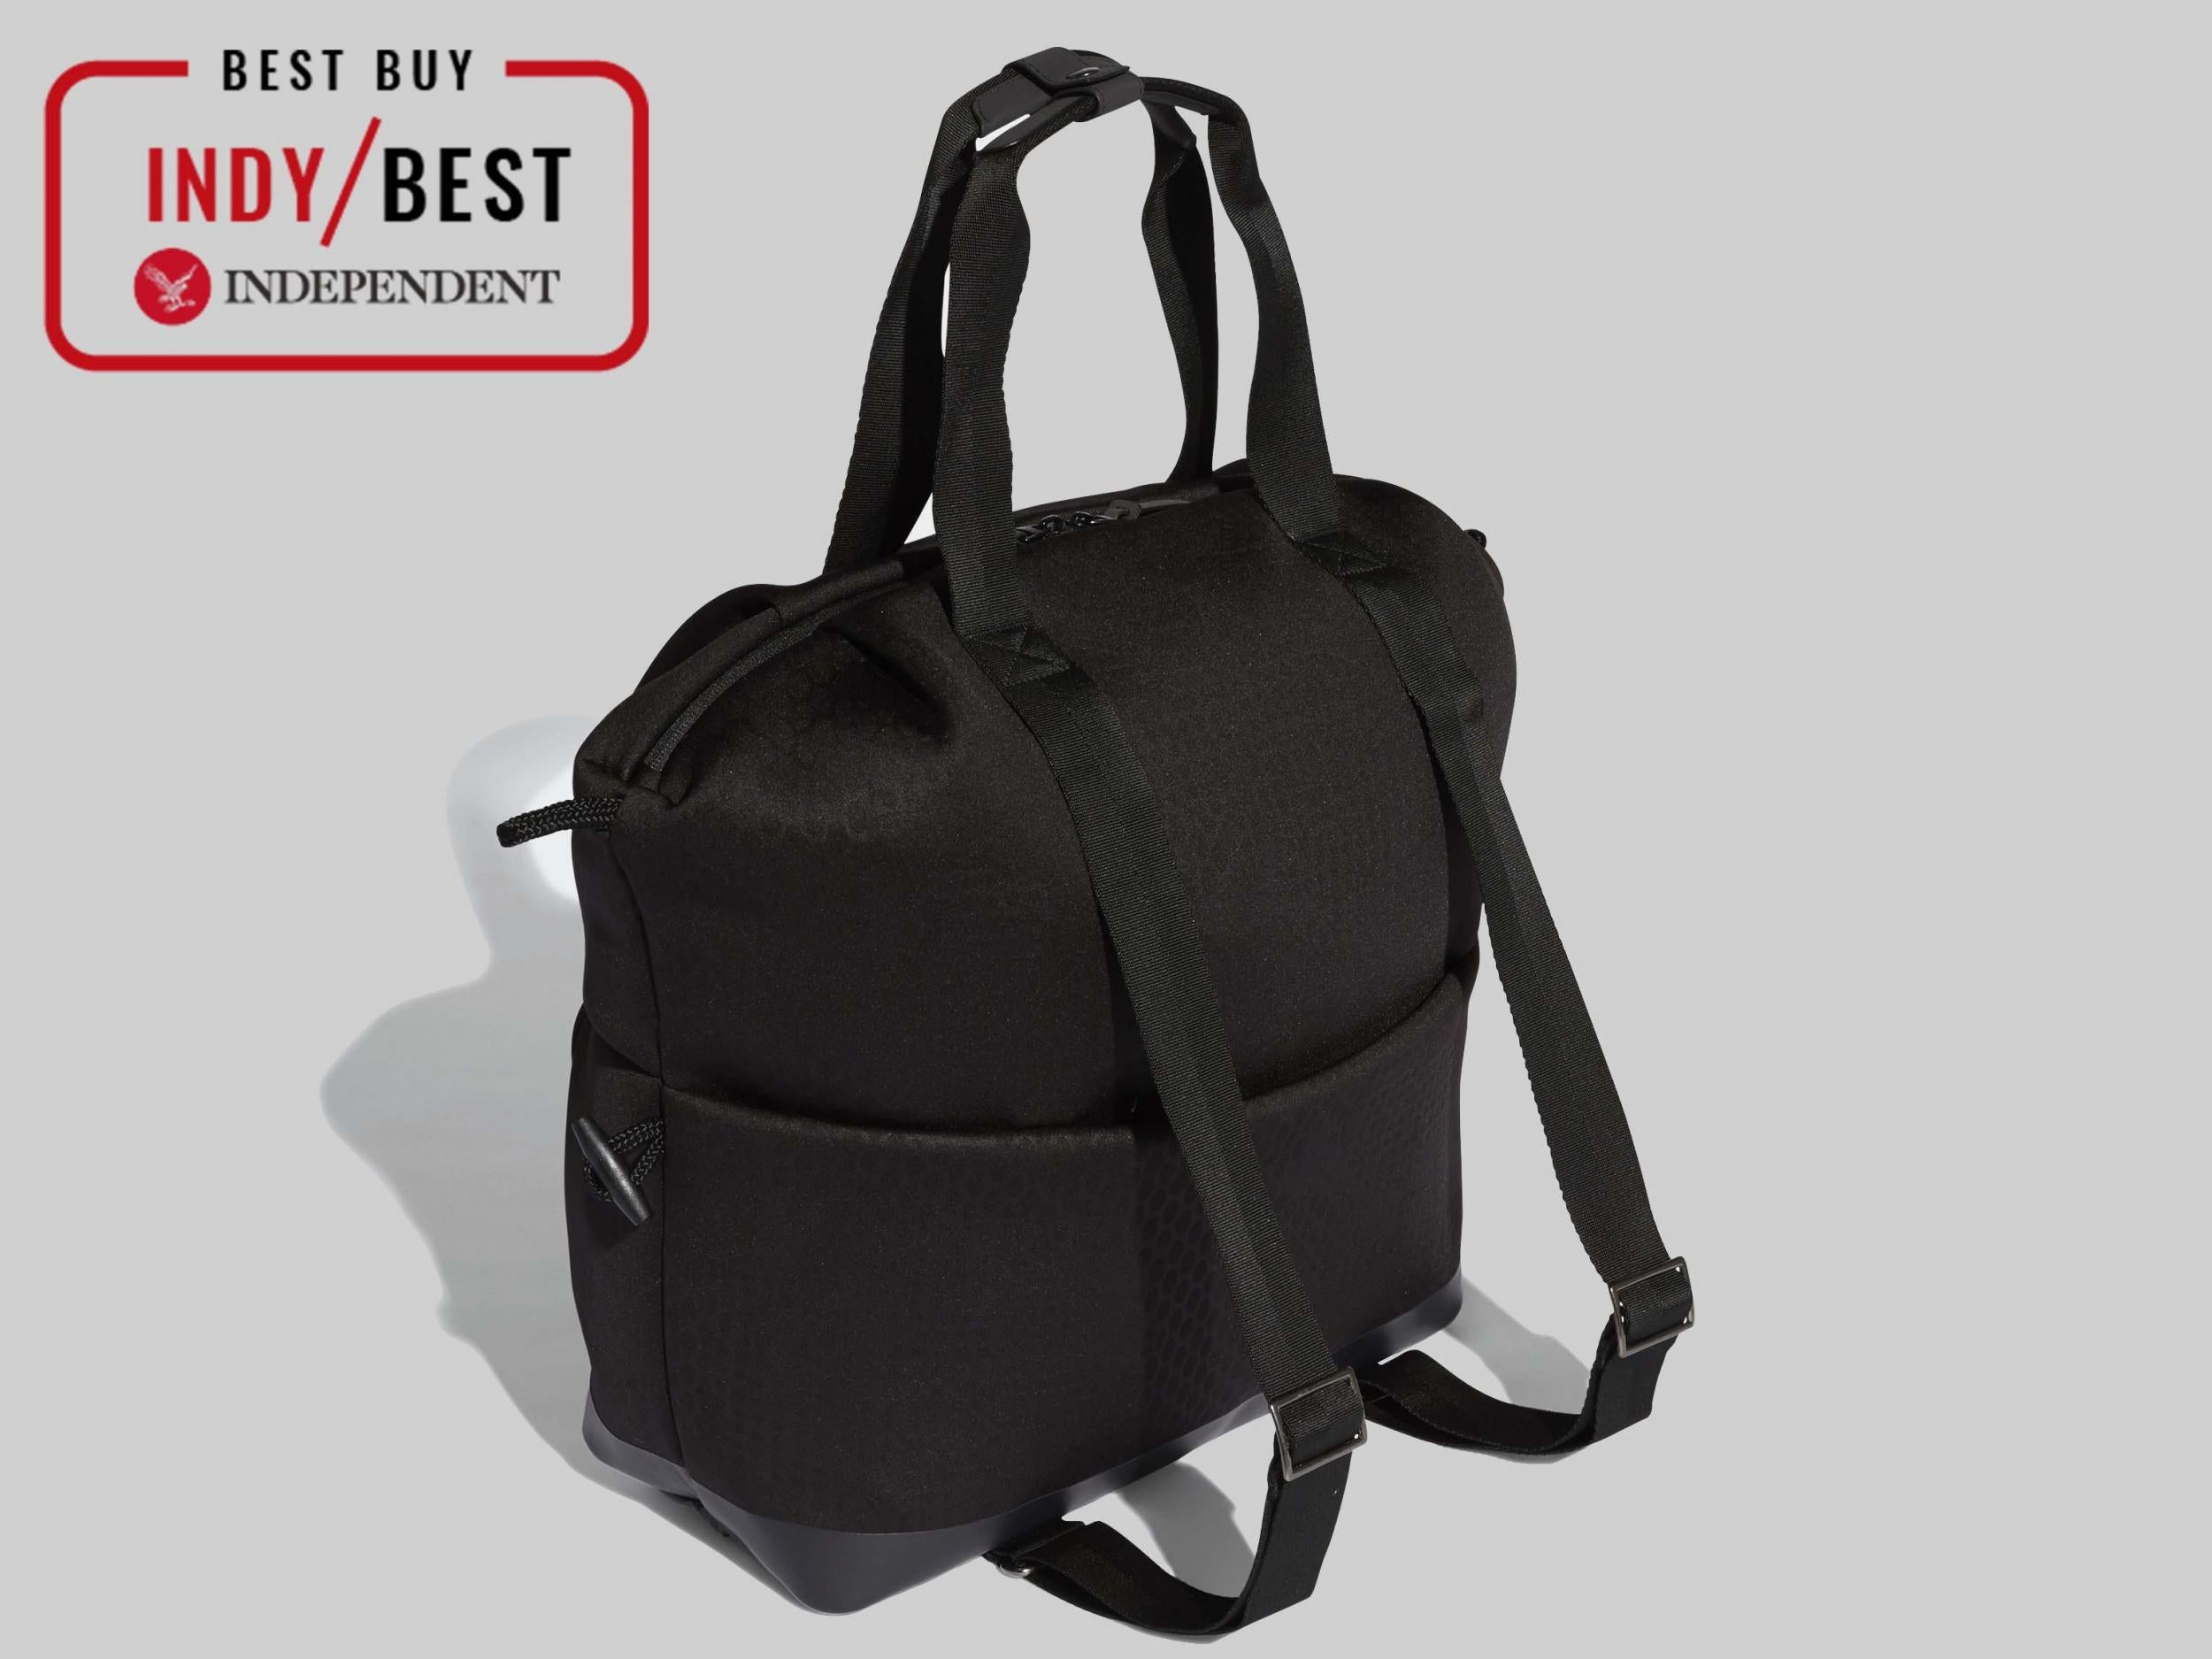 b52ff045db 11 best gym bags for women | The Independent